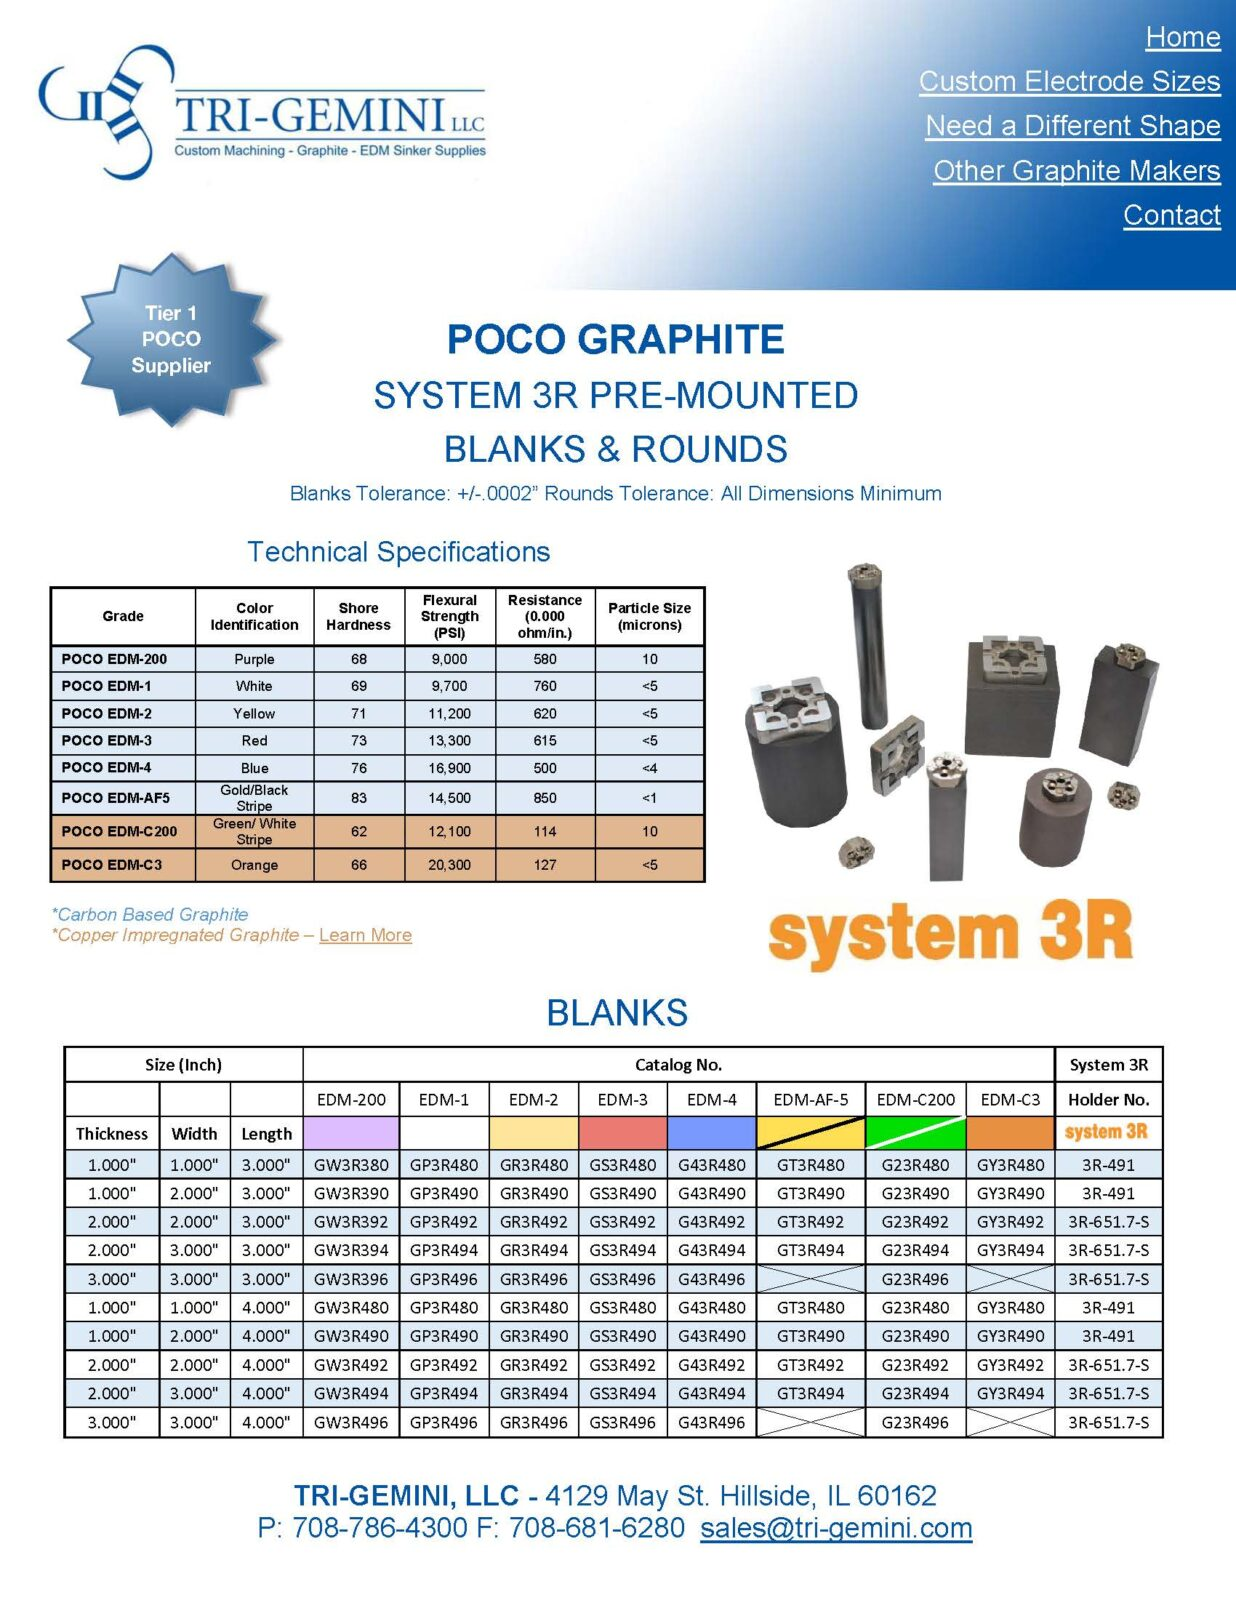 POCO System 3R Mounted Electrodes